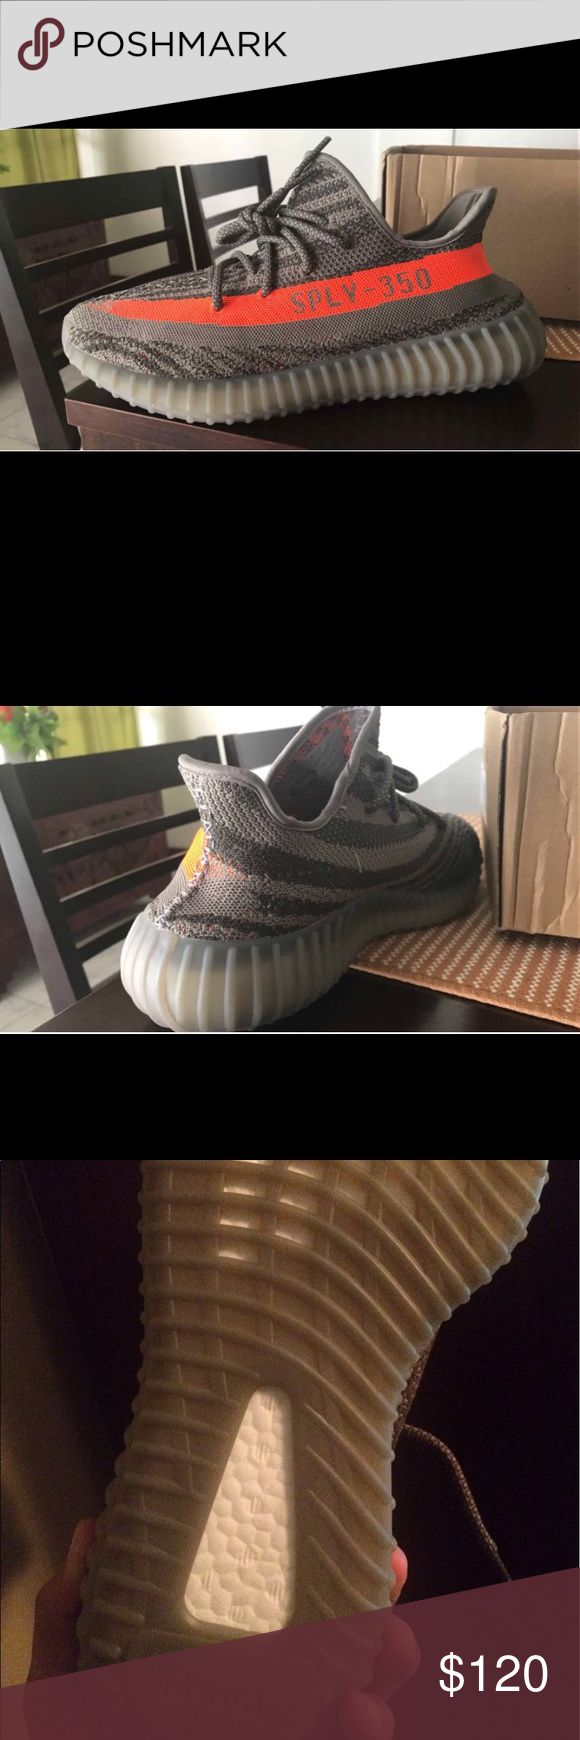 Adidas Yeezy boost V2 beluga orange and grey new Size 10 2017 yeezy boost with box took out to wear once around my house that's it and to take pictures. Have box in perfect condition! I'm located in the USA , Mississippi to be exact so shipping will be quick! Price may be negotiable! Let me know if you have anymore questions I'll be happy to answer ! adidas Shoes Sneakers